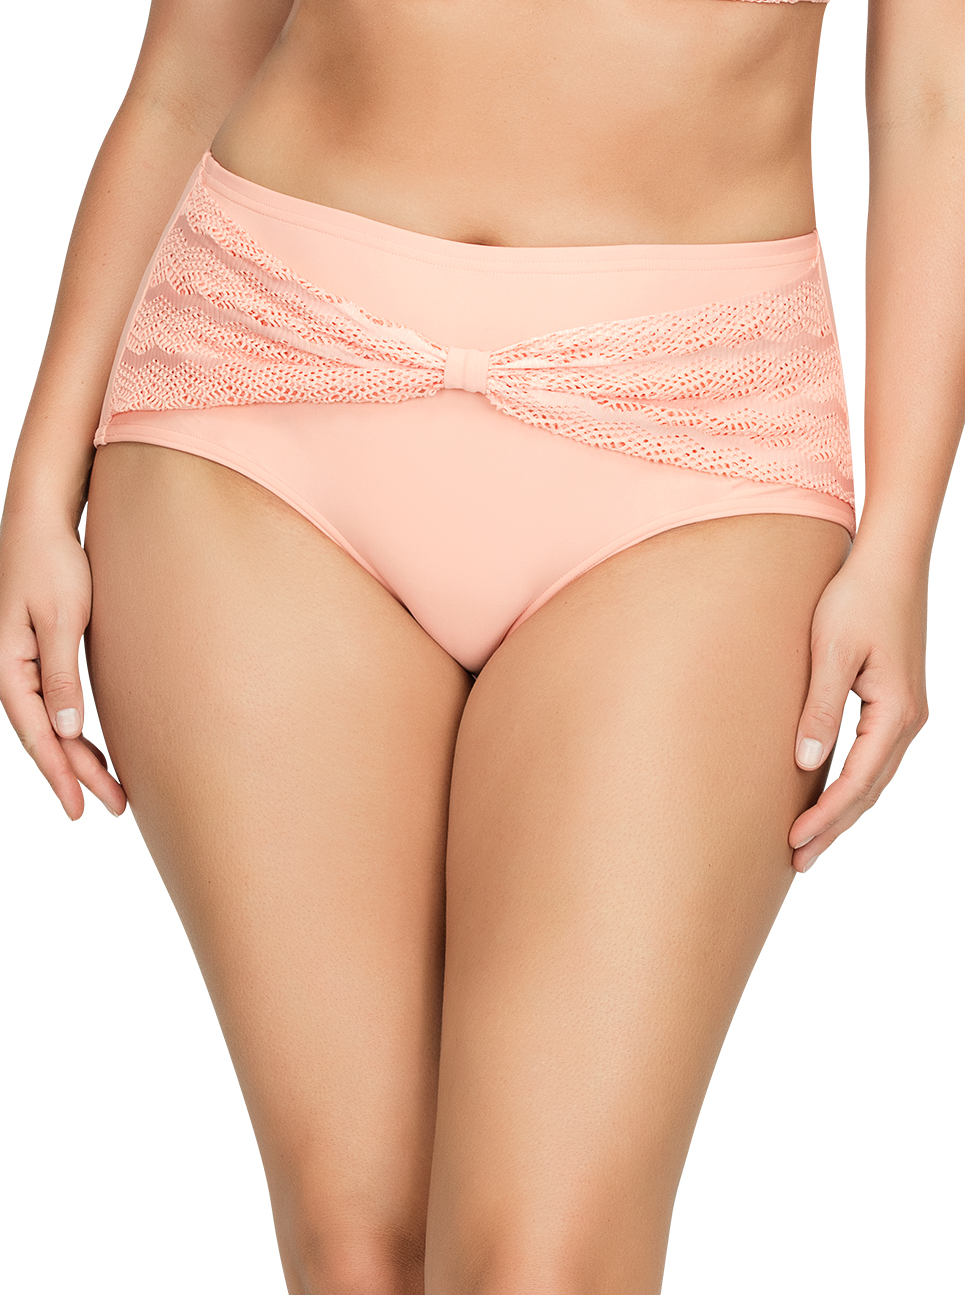 PARFAIT Keira HighWaistBikiniBottomS8075 Peach Front1 - Keira High-Waist Bikini Bottom Peach S8075